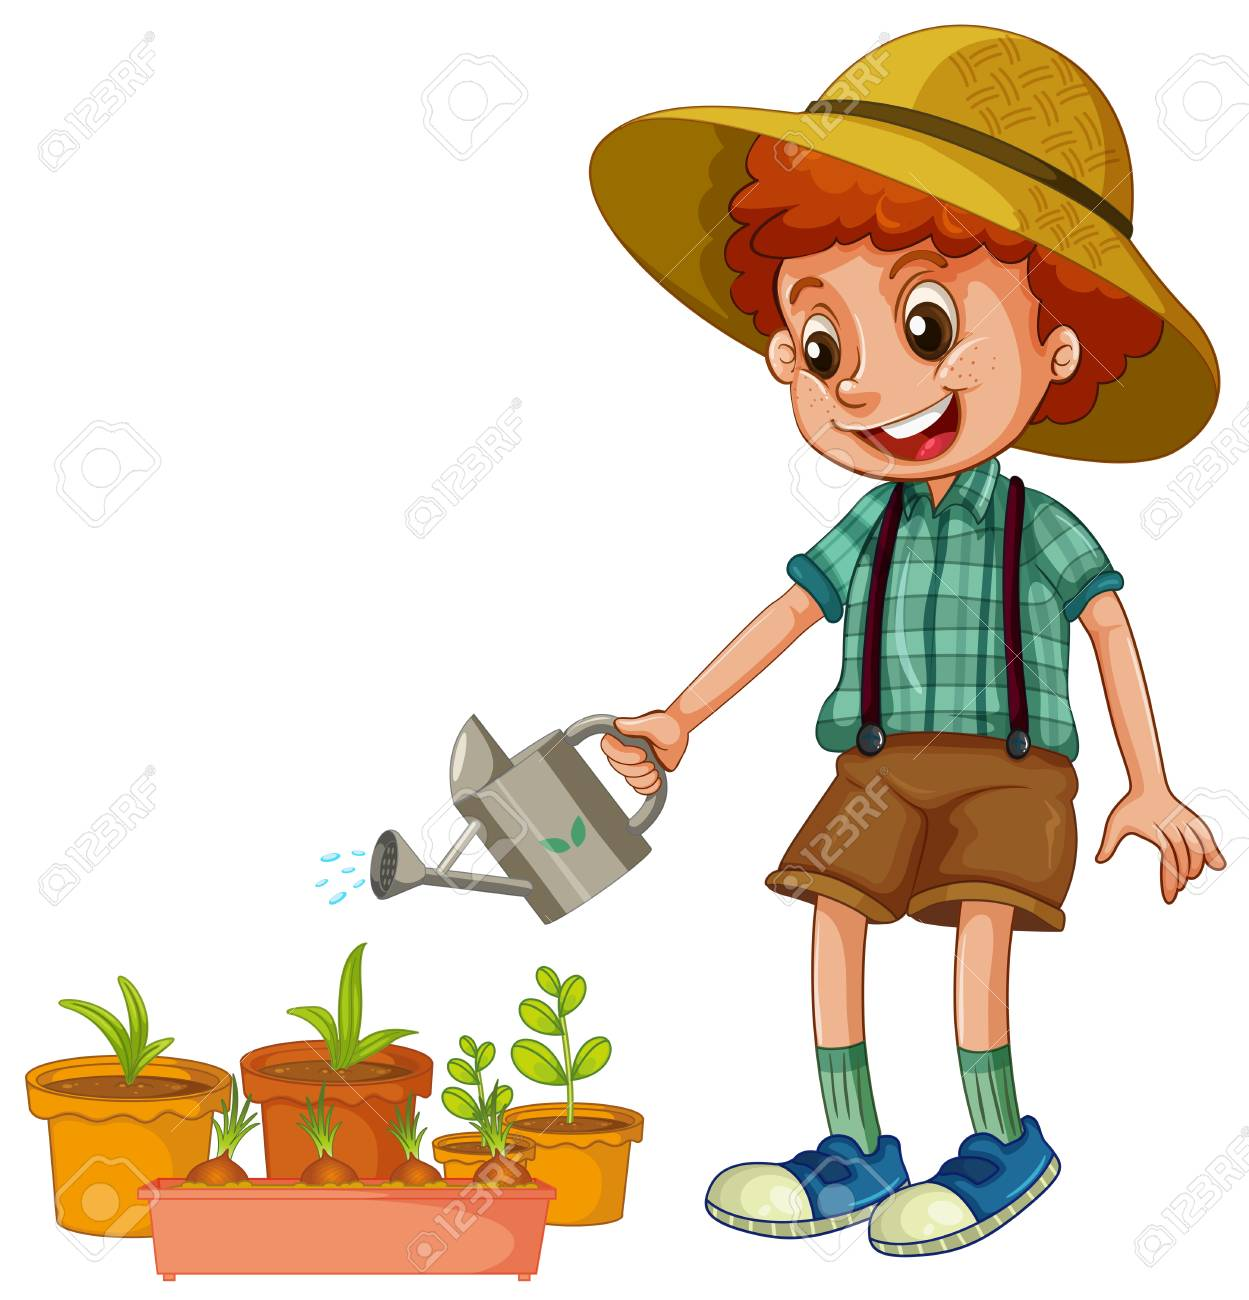 A Boy Watering the Plants illustration.